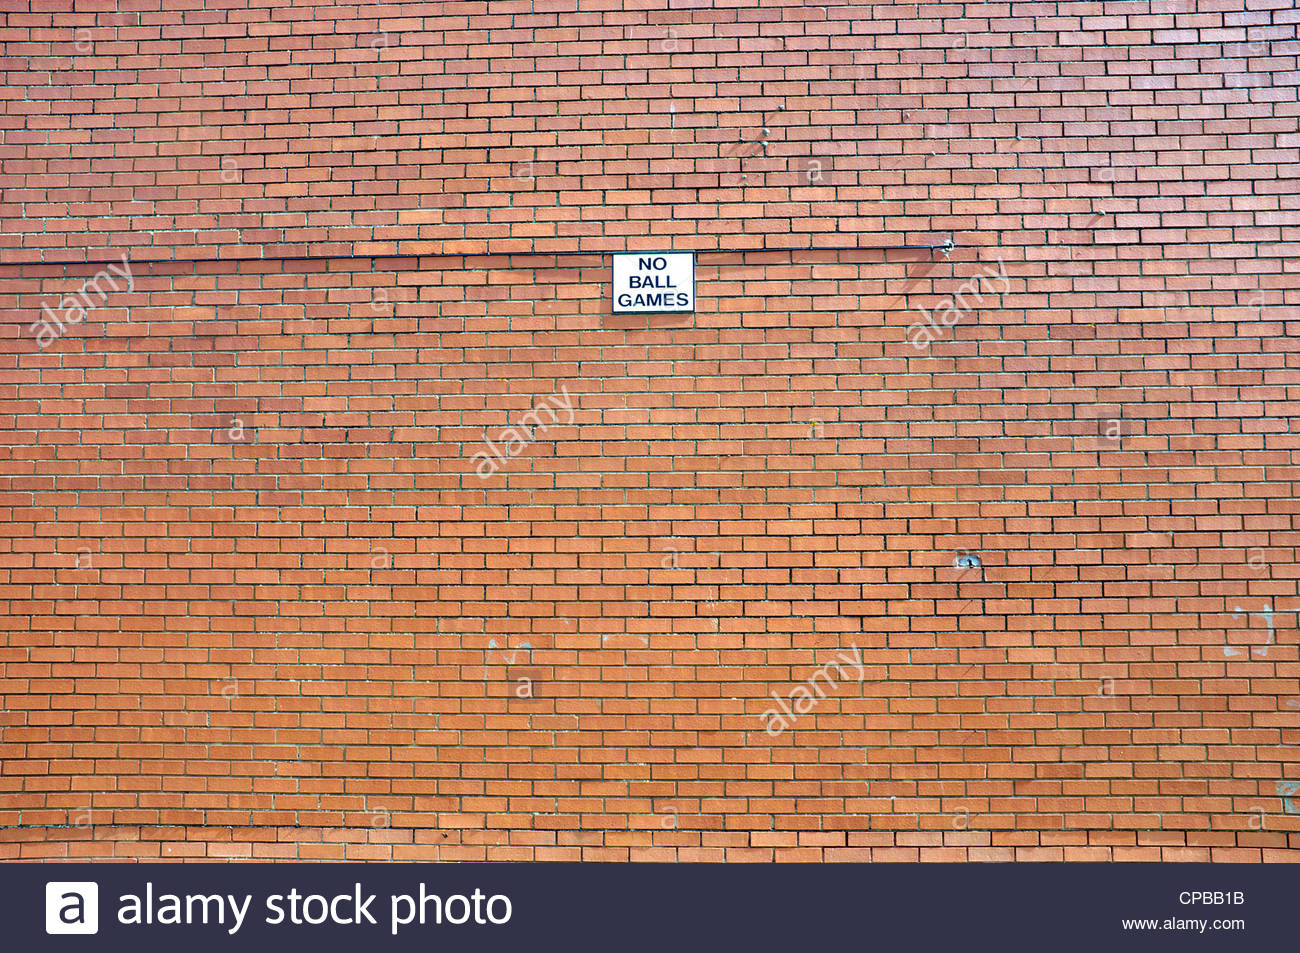 Sign 'No Ball Games' on a red brick wall, UK. Stock Photo